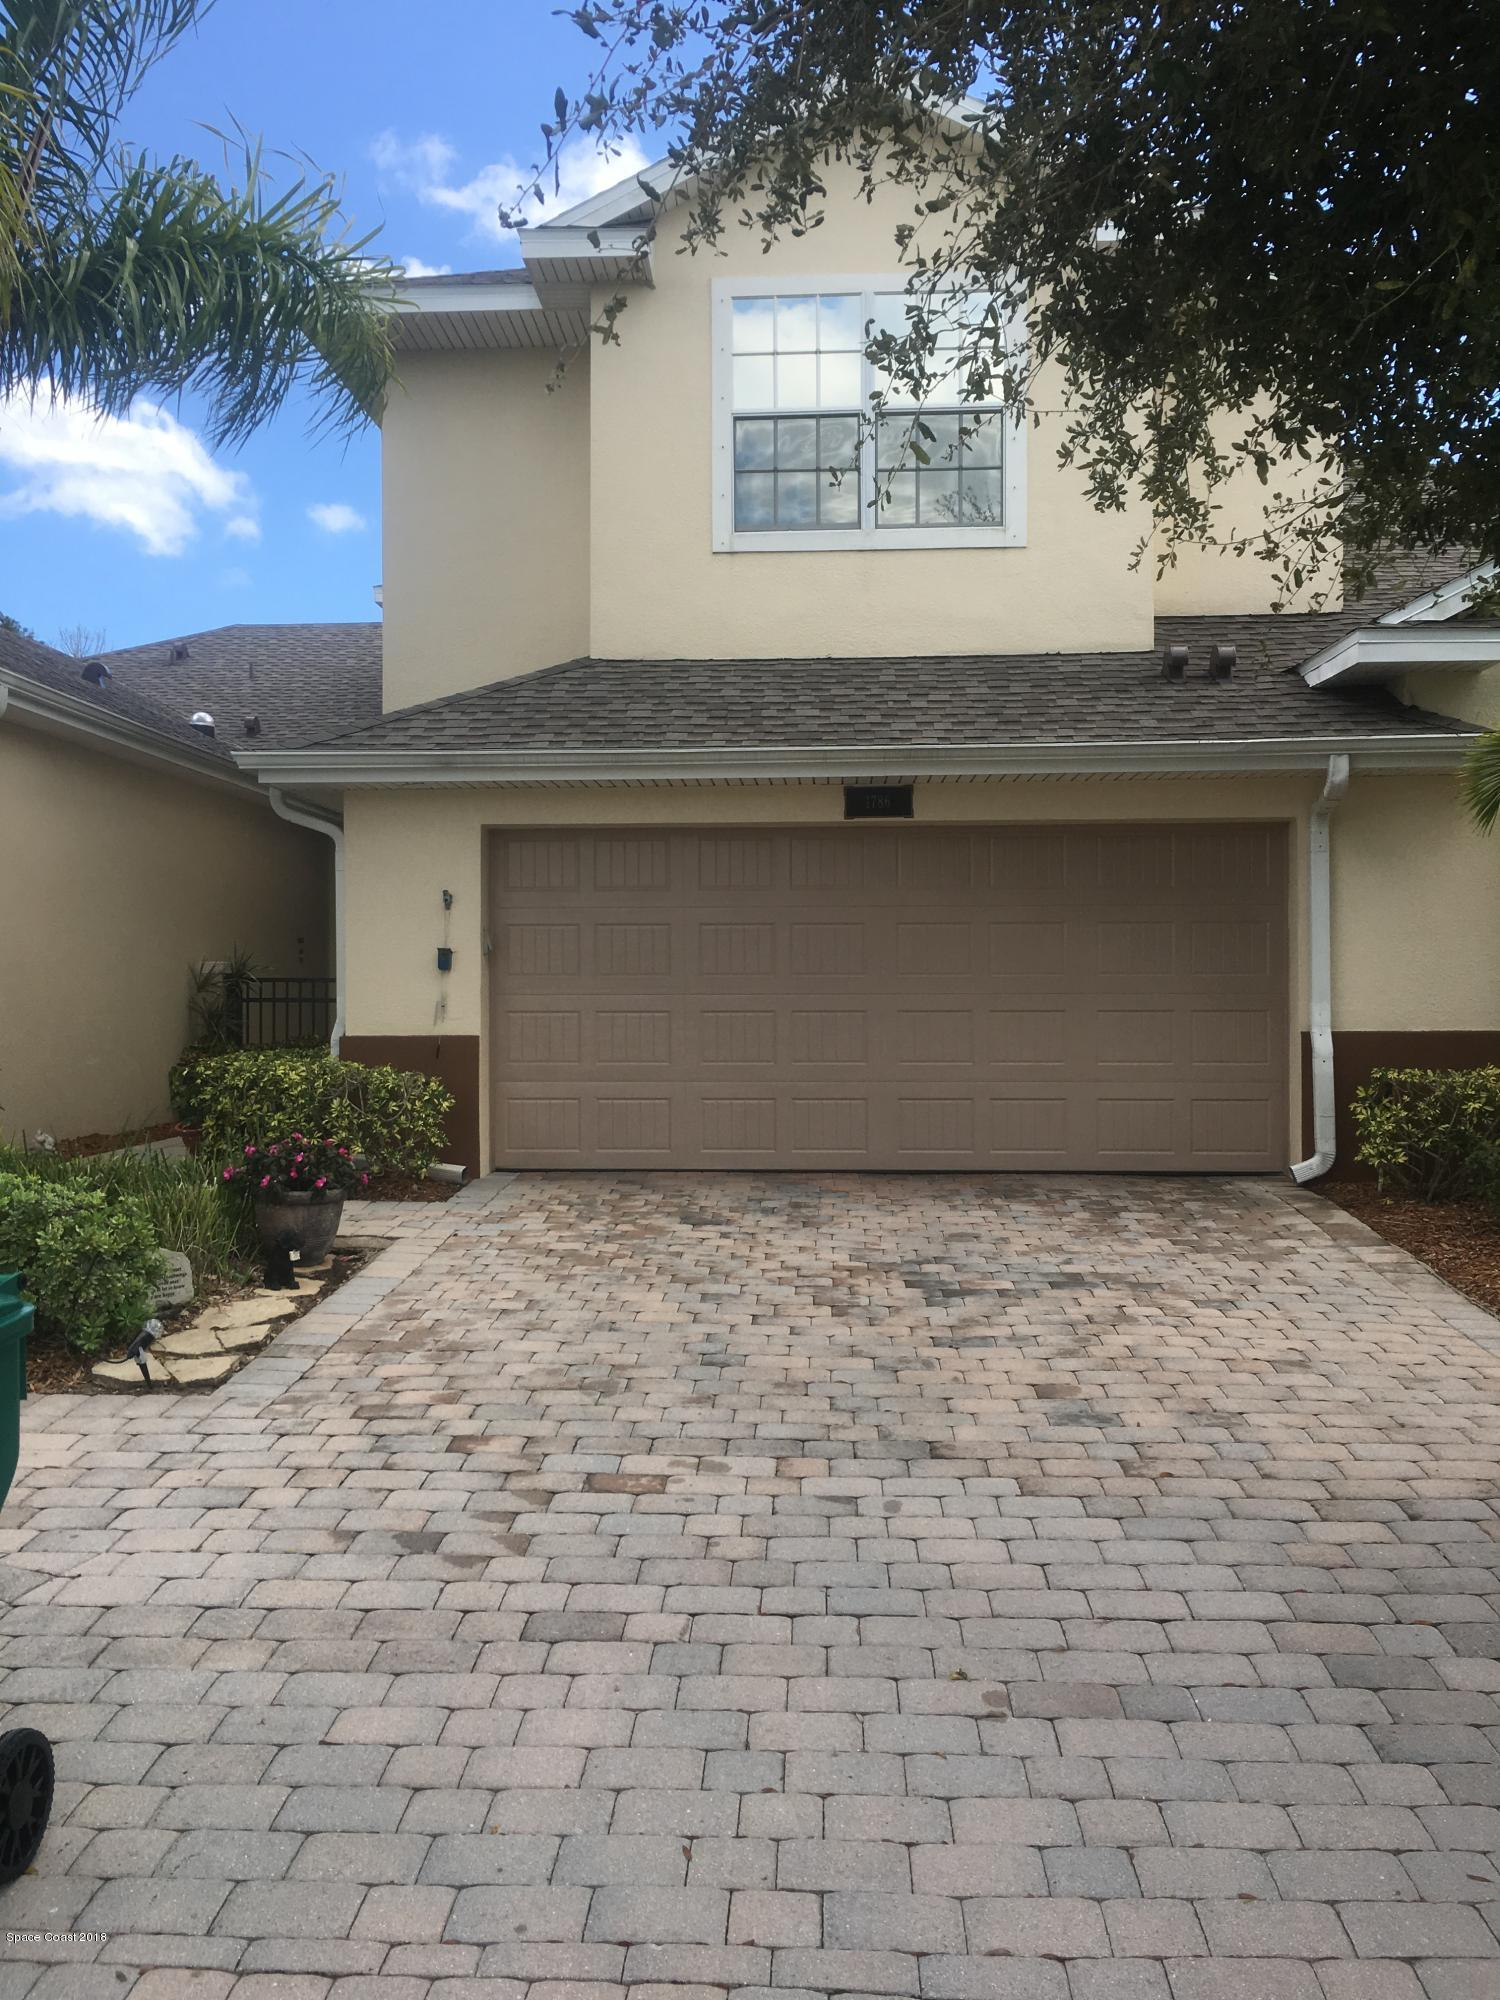 Single Family Home for Sale at 1786 Donegal 1786 Donegal Melbourne, Florida 32940 United States